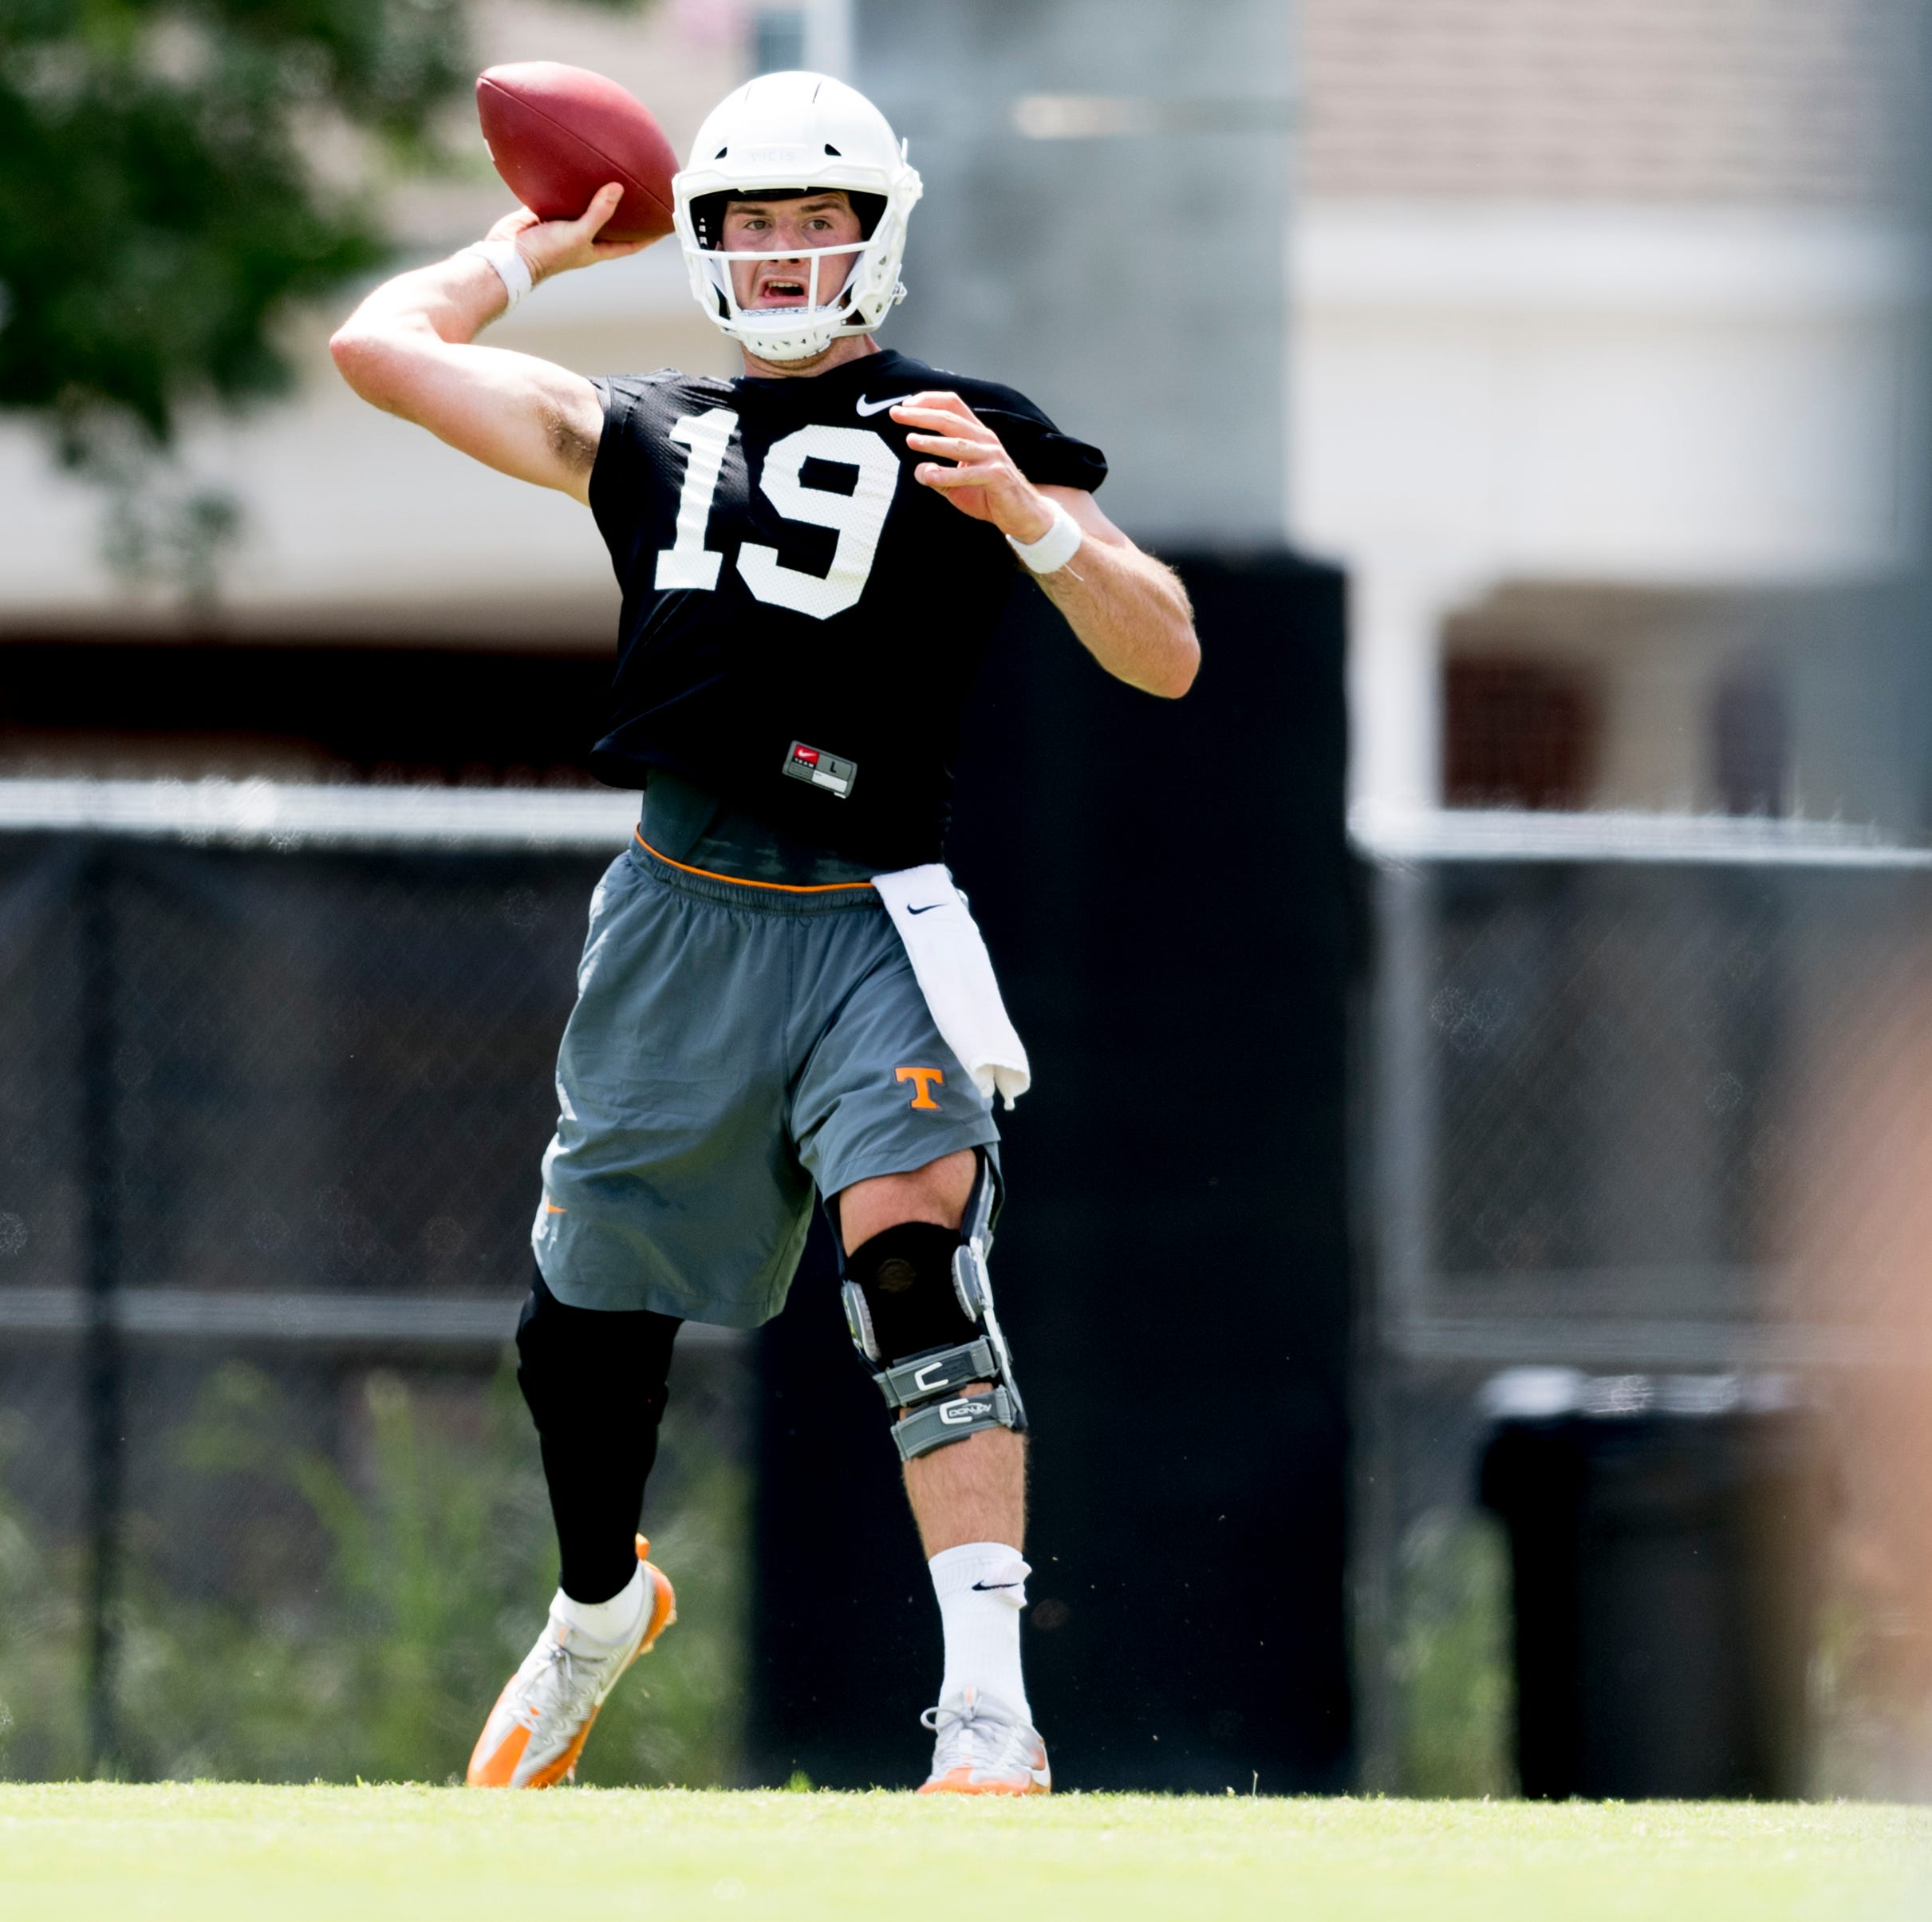 Vols quarterback Keller Chryst 'too talented' to be backup, Stanford coach David Shaw says